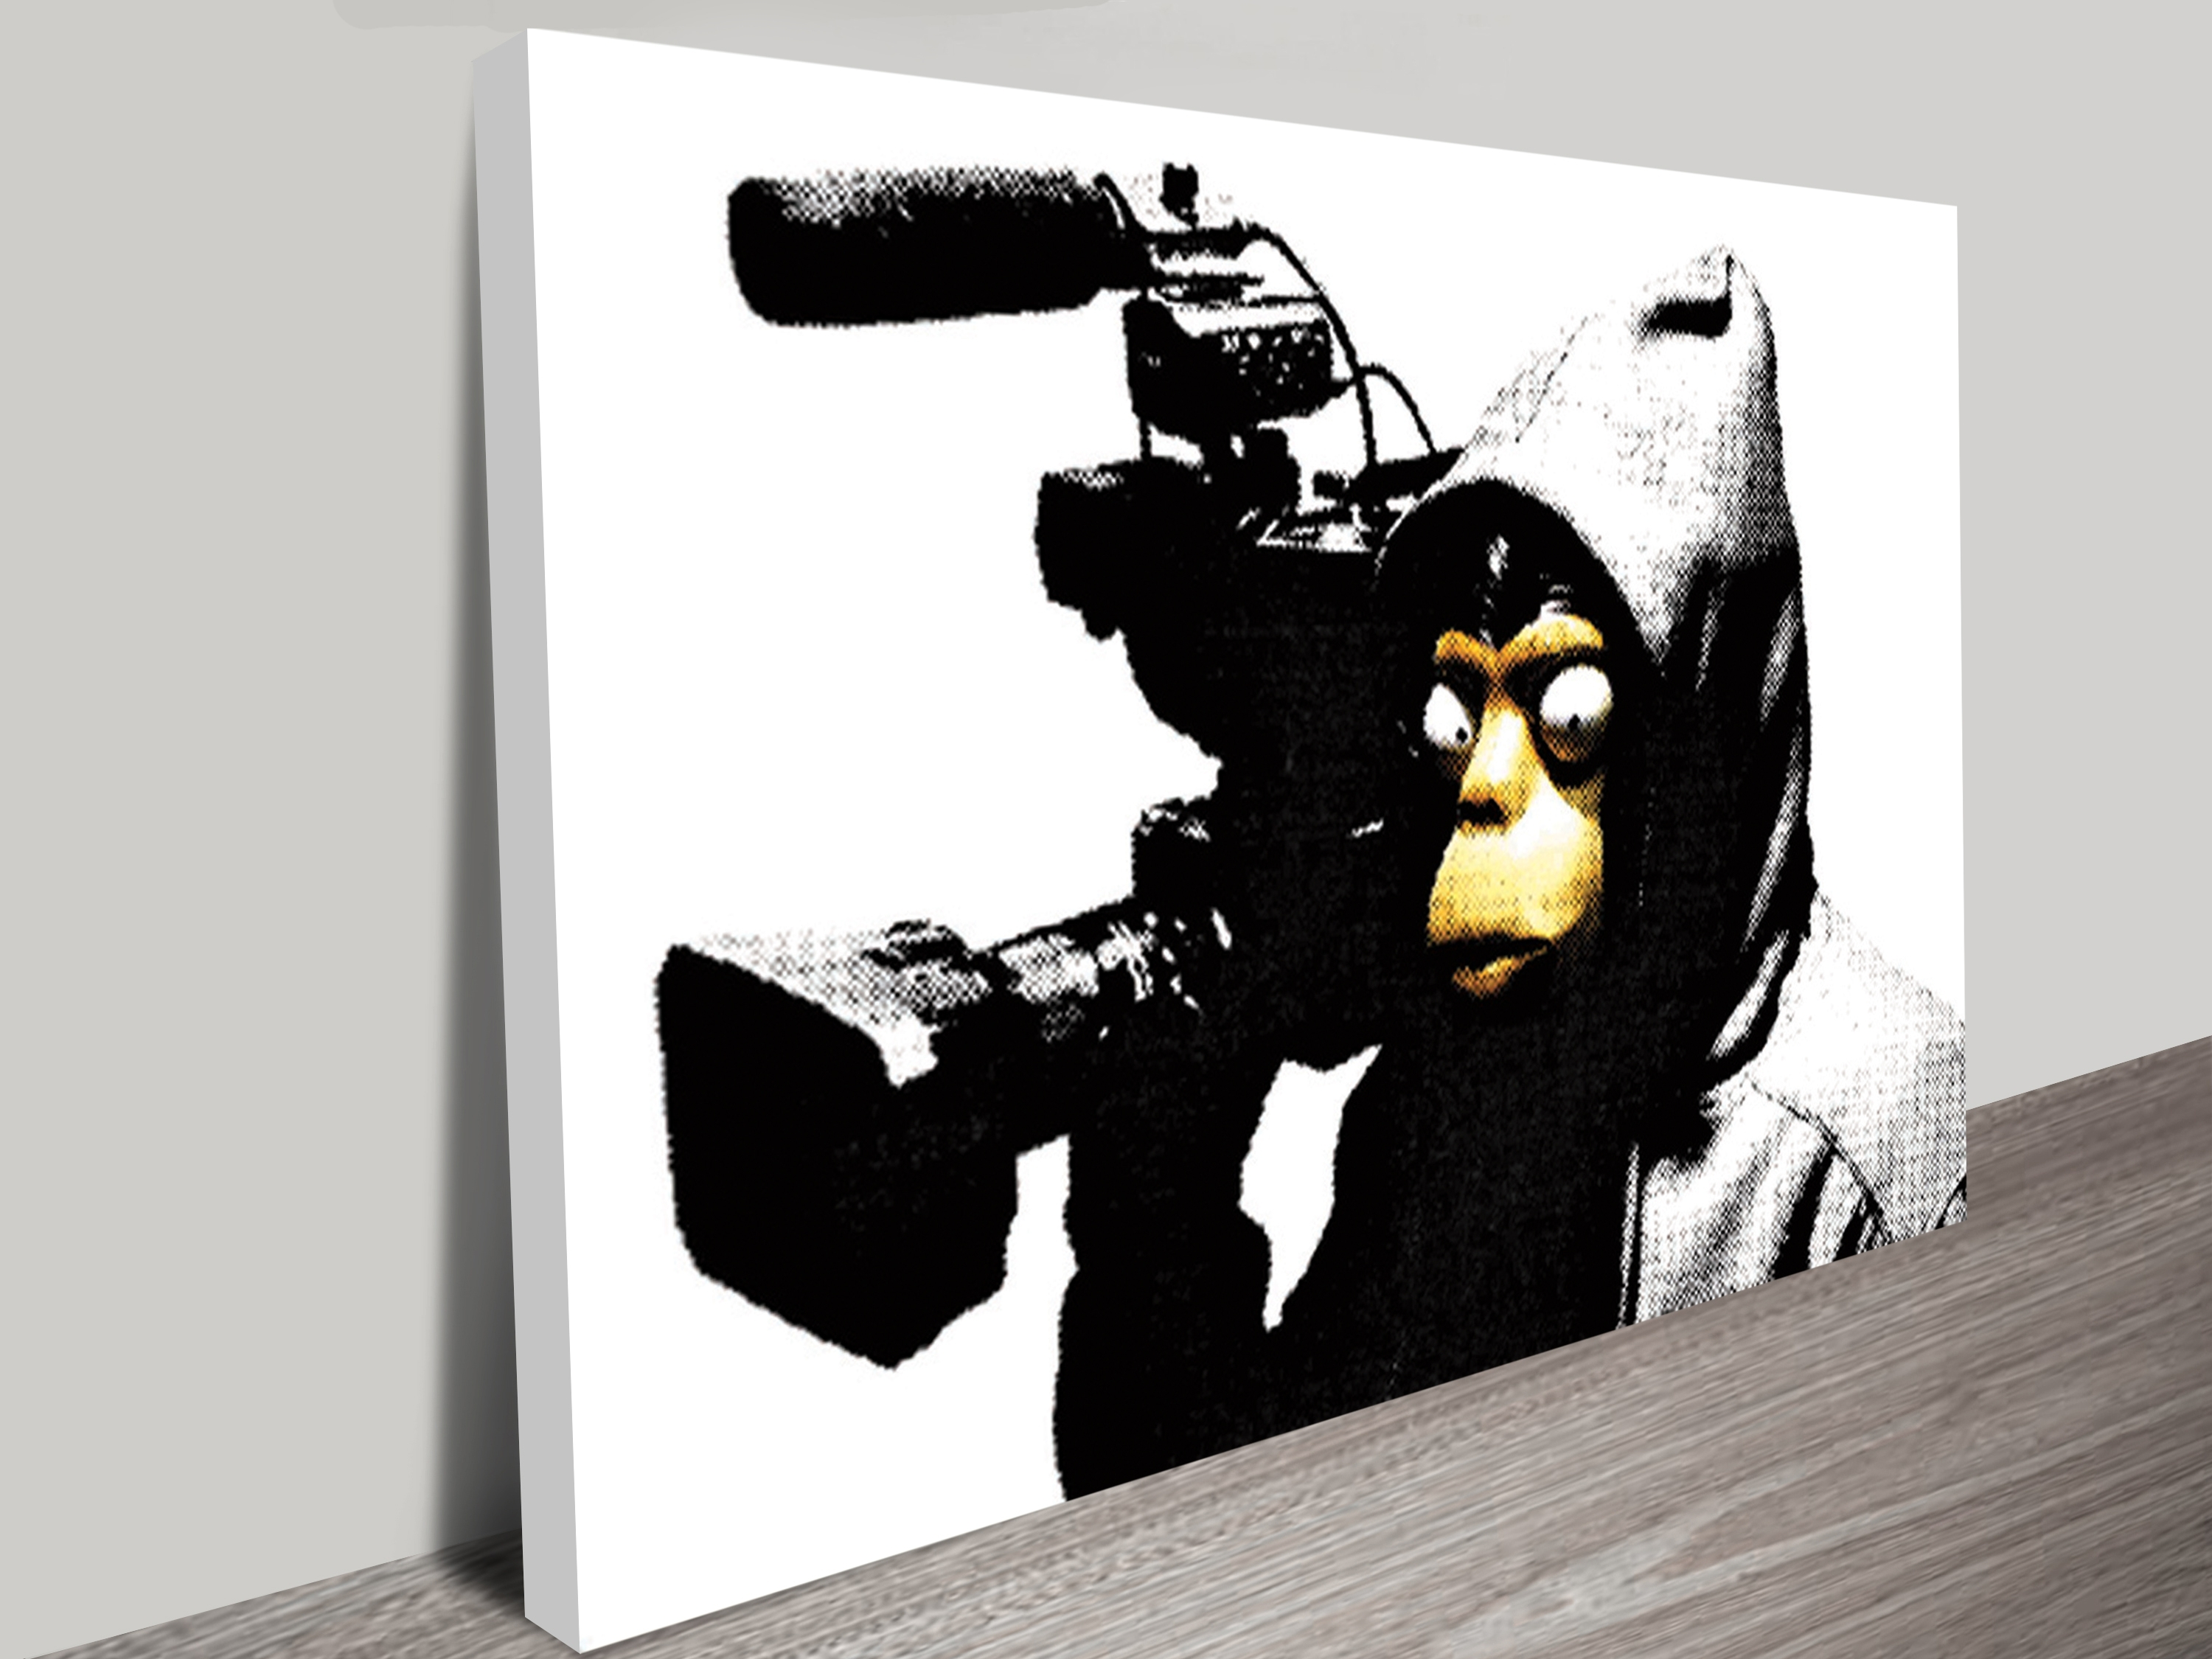 Graffiti Art – Blue Horizon Prints Regarding Banksy Wall Art Canvas (View 10 of 15)